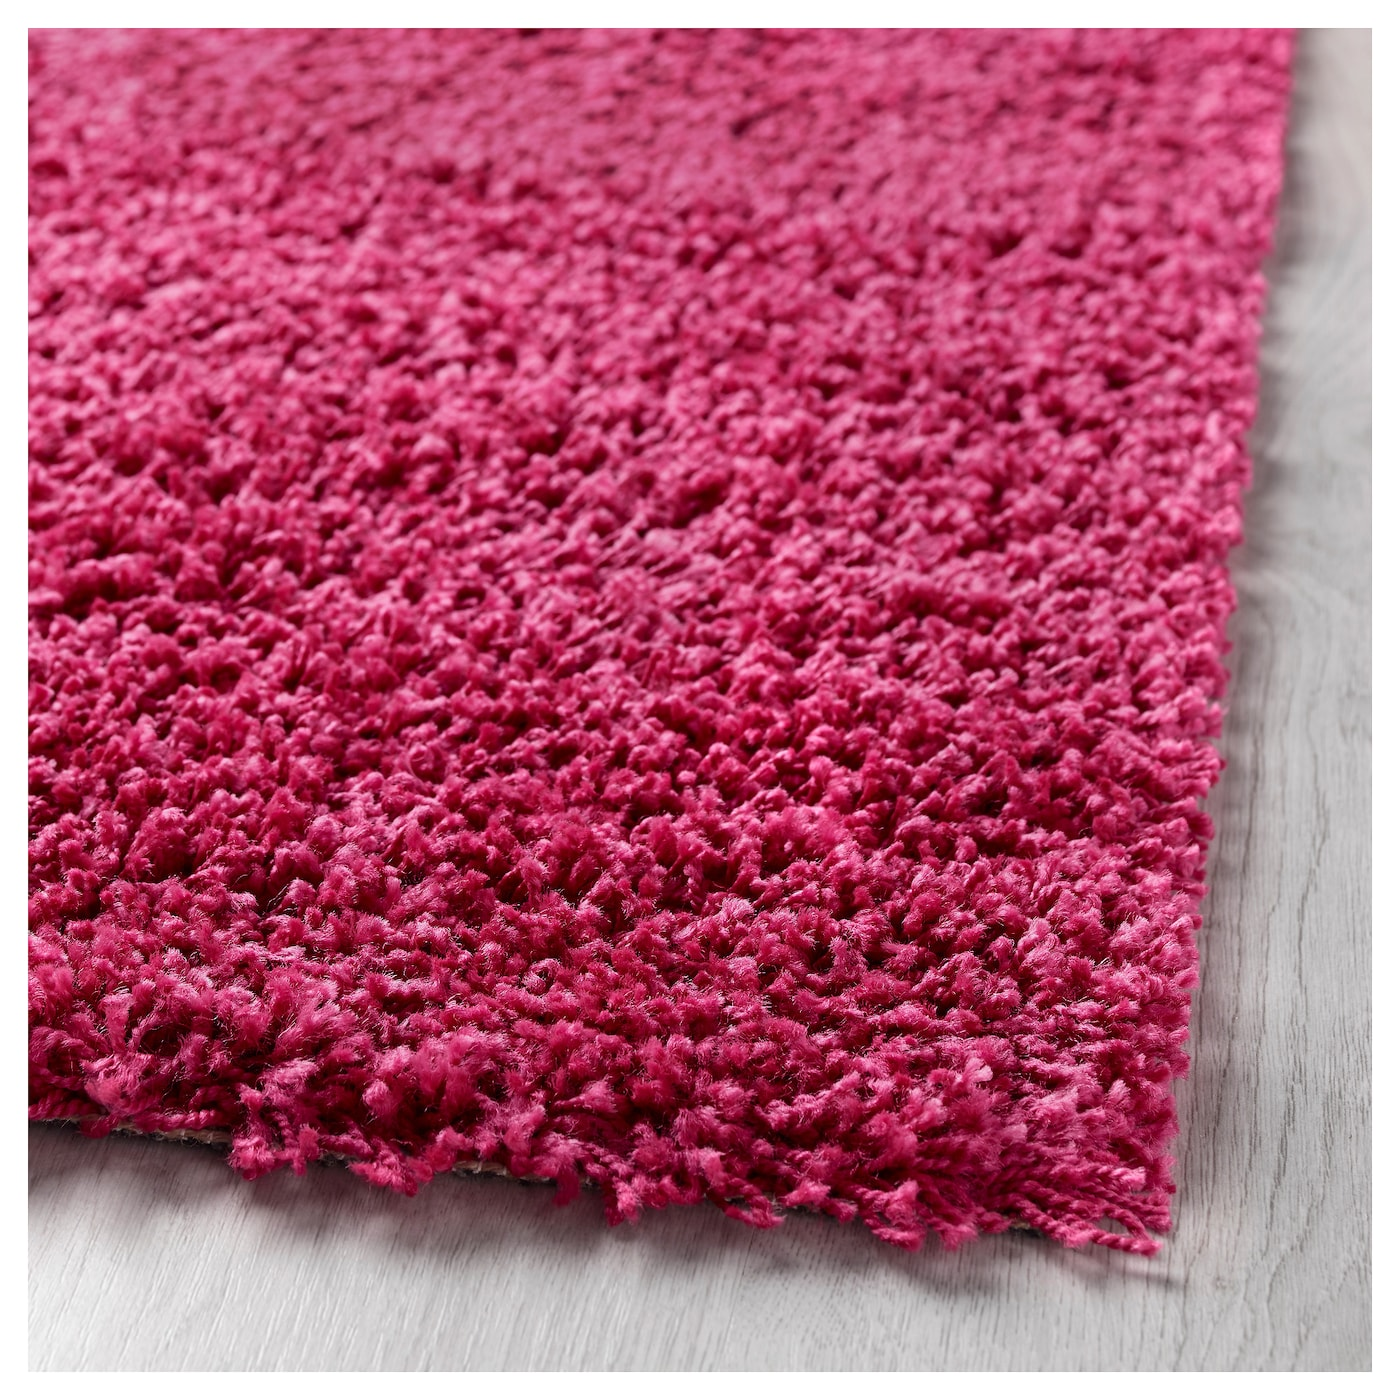 Fabulous HAMPEN Rug, high pile Bright pink 133 x 195 cm - IKEA RB04